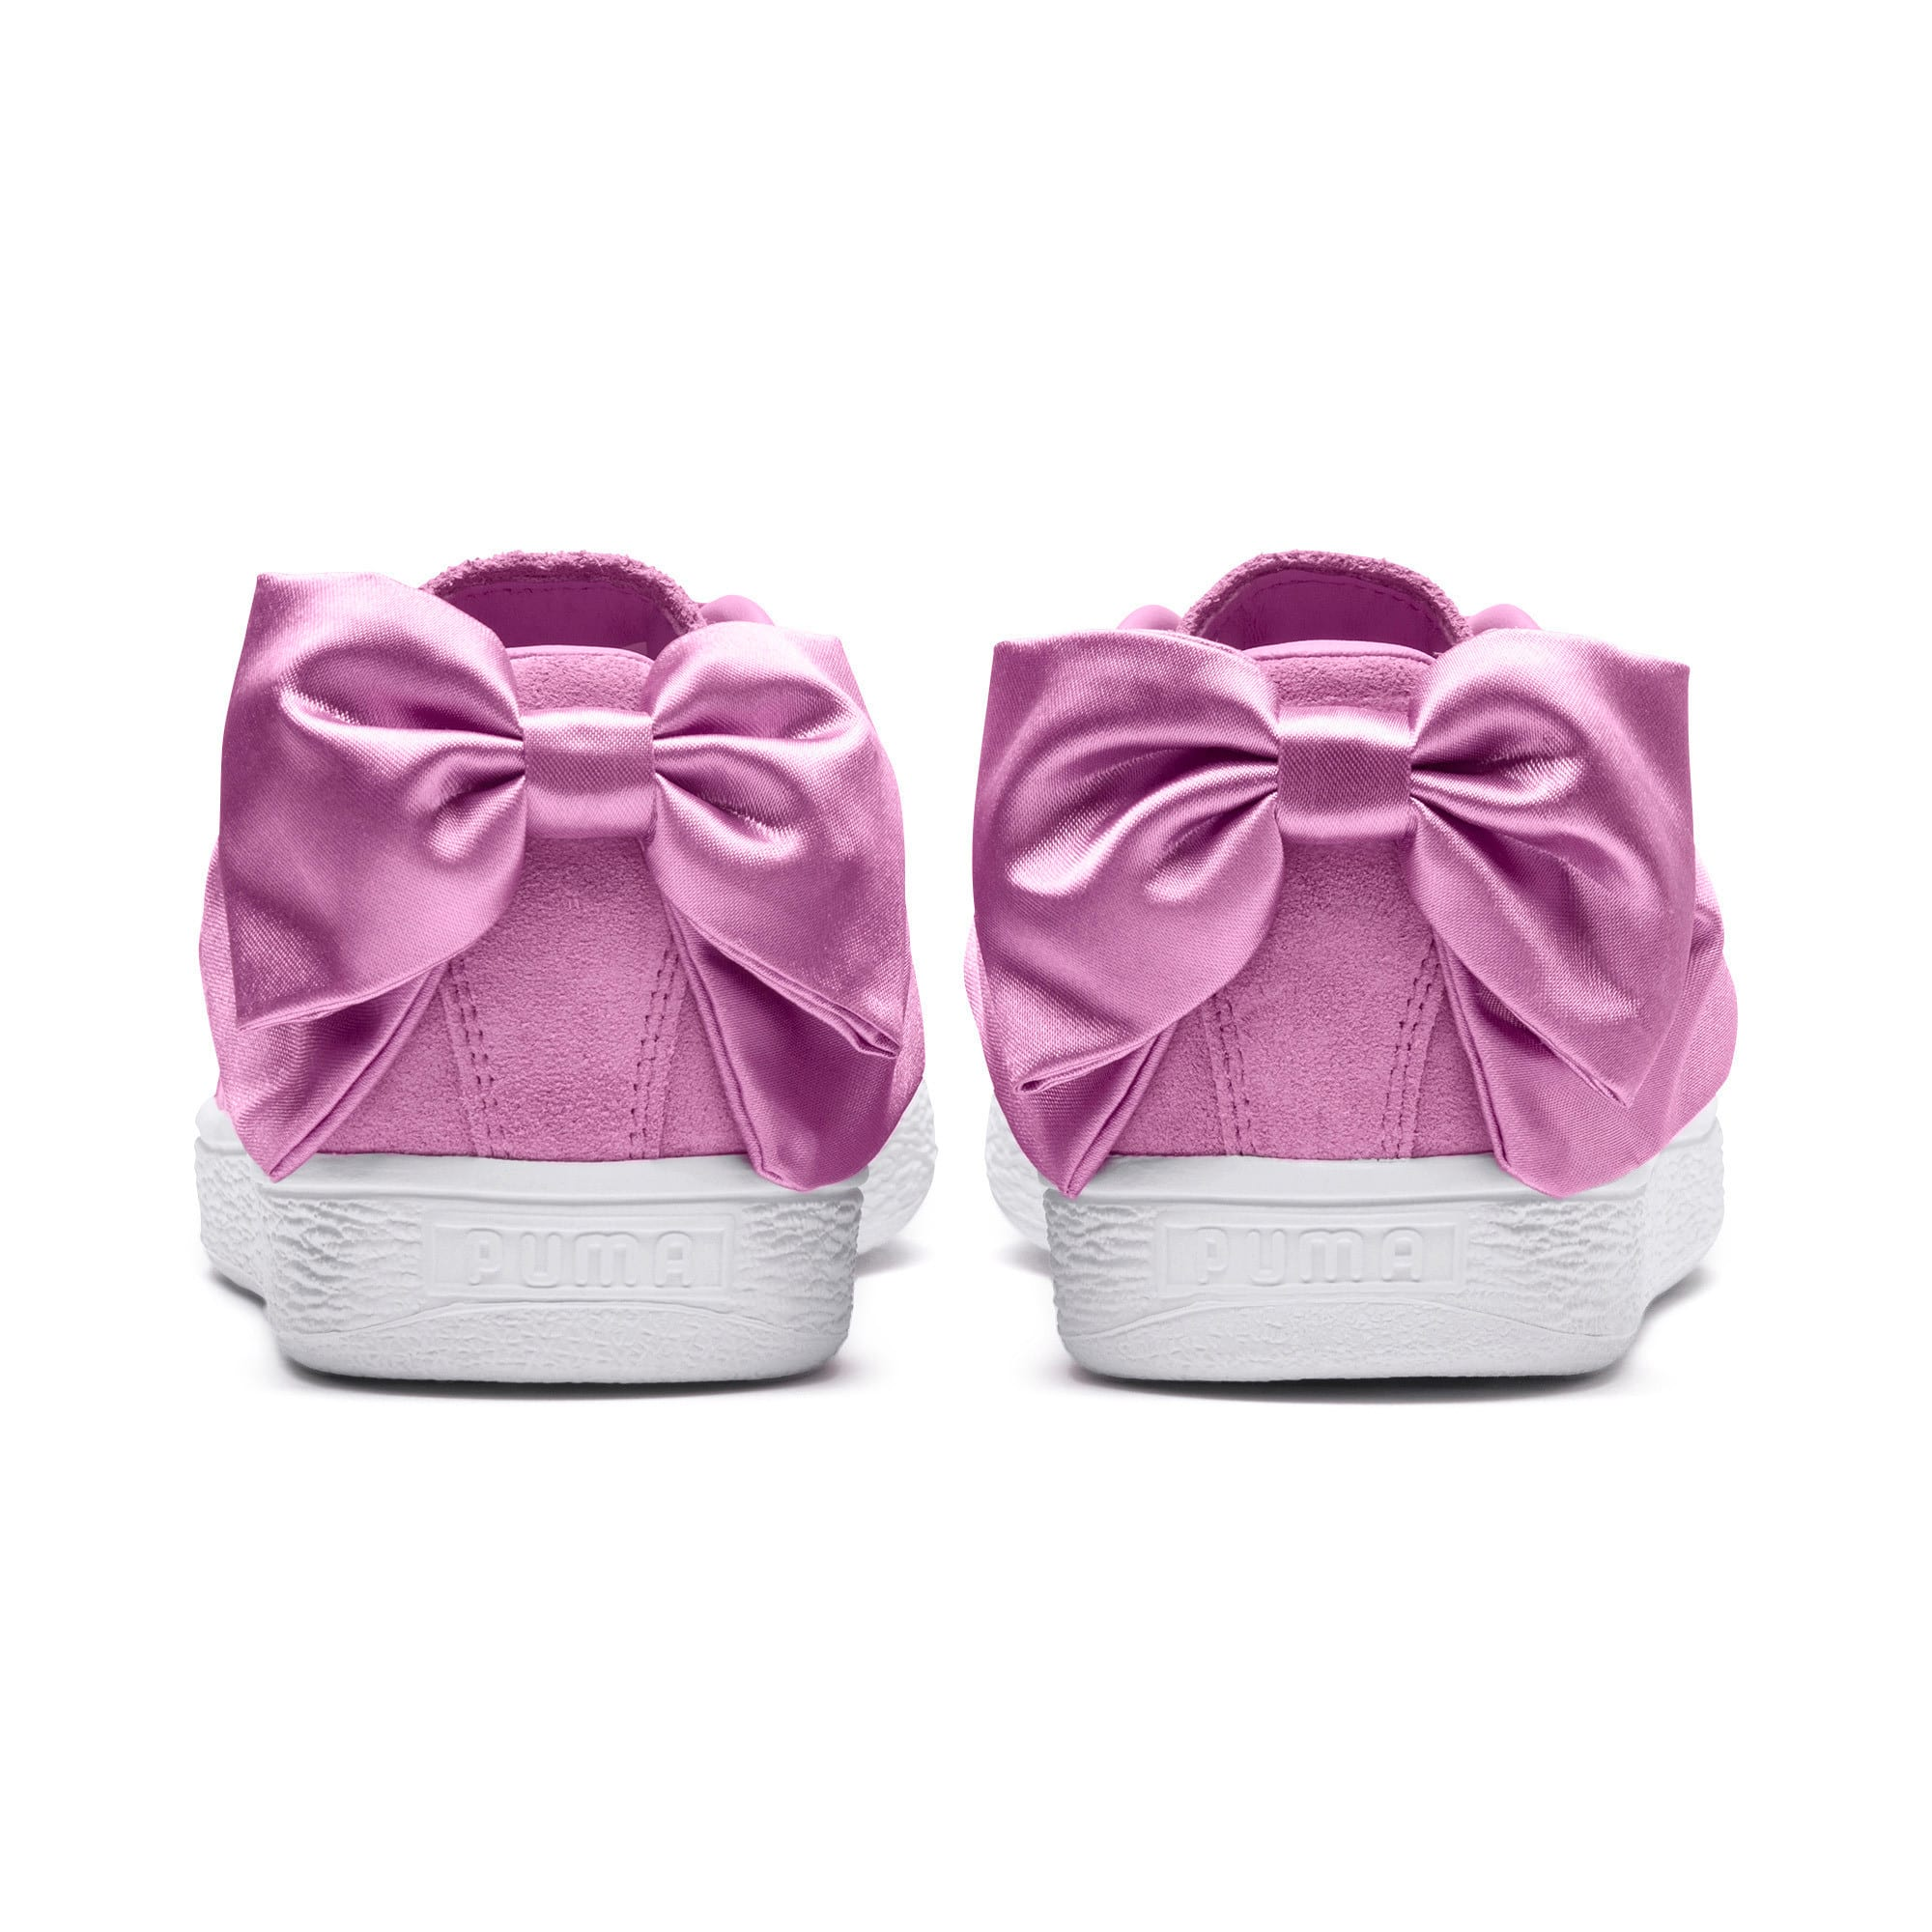 Thumbnail 3 of Suede Bow Girls' Trainers, Orchid-Orchid, medium-IND